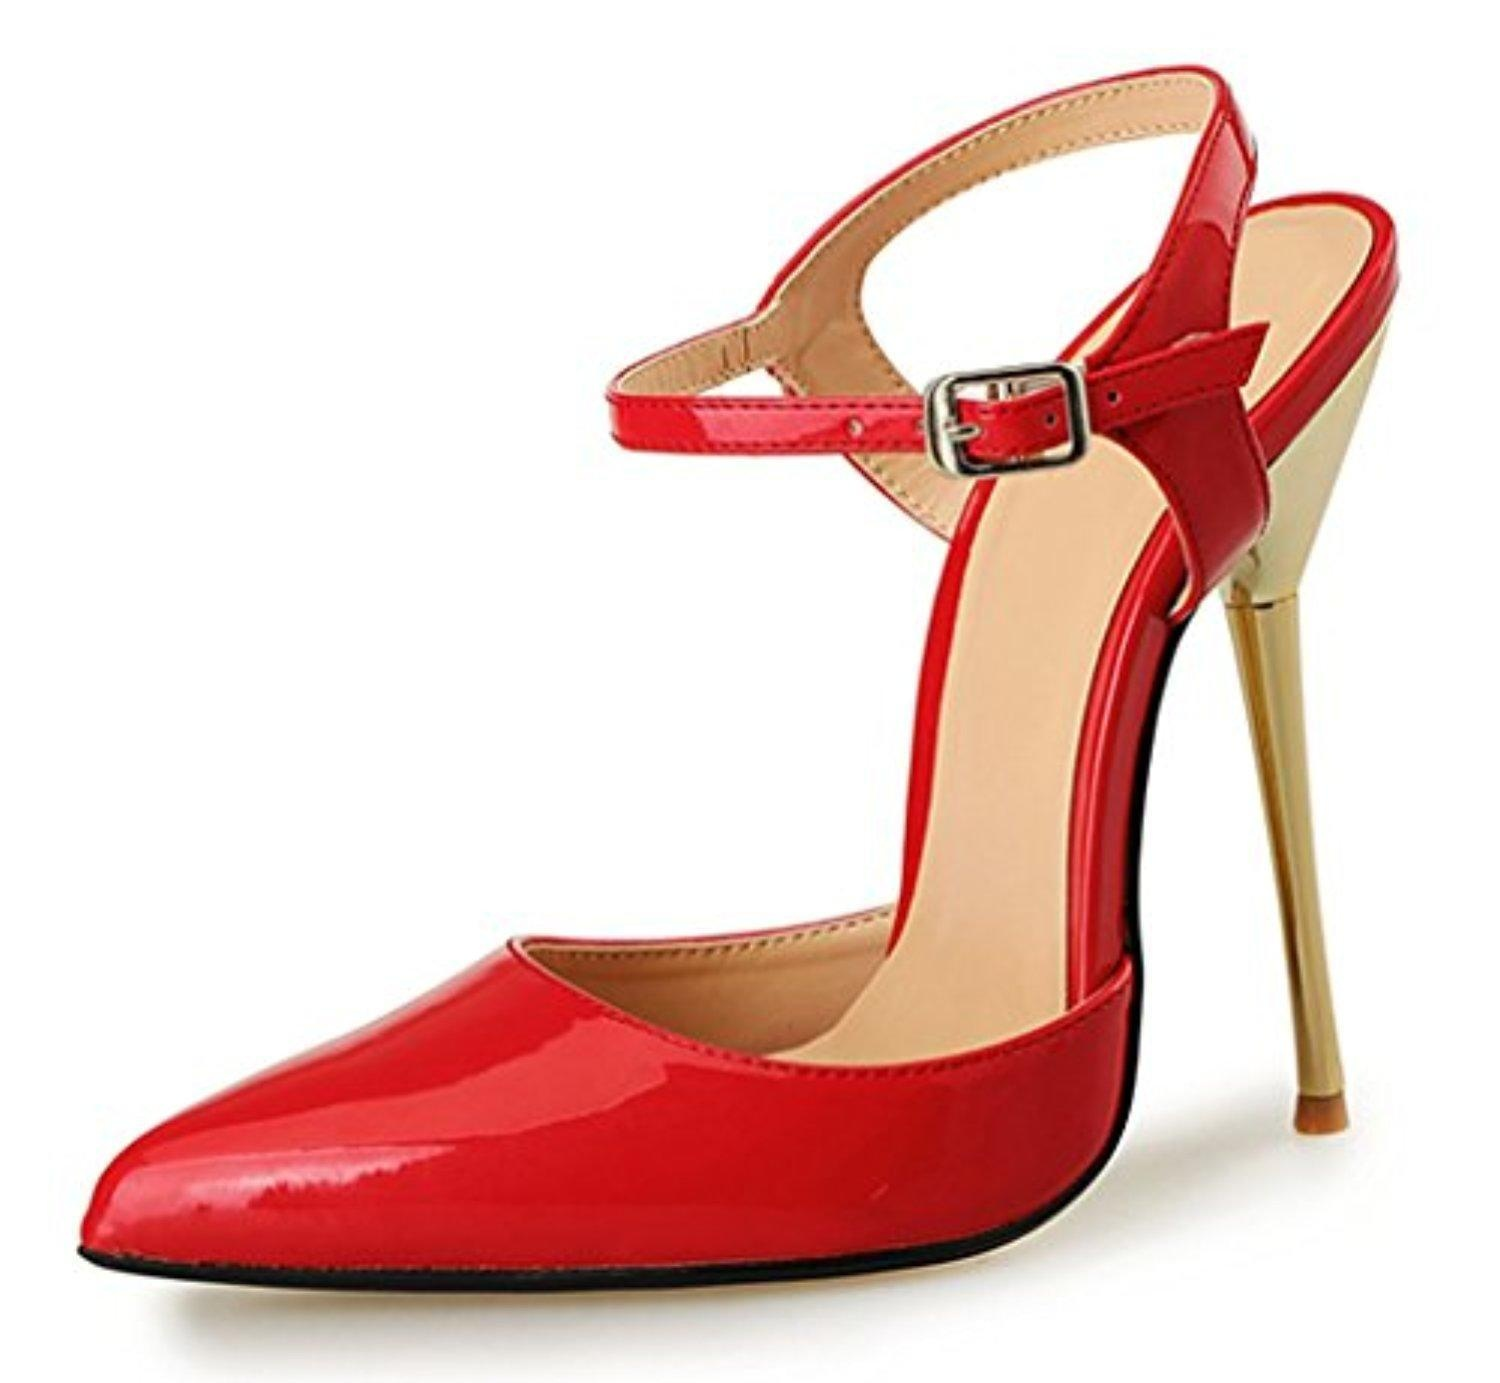 Womens Elegant Slingback Ankle Strap Buckle Pointed Toe Stiletto Metal Heel Pumps Shoes Red Size 13.5 EU49